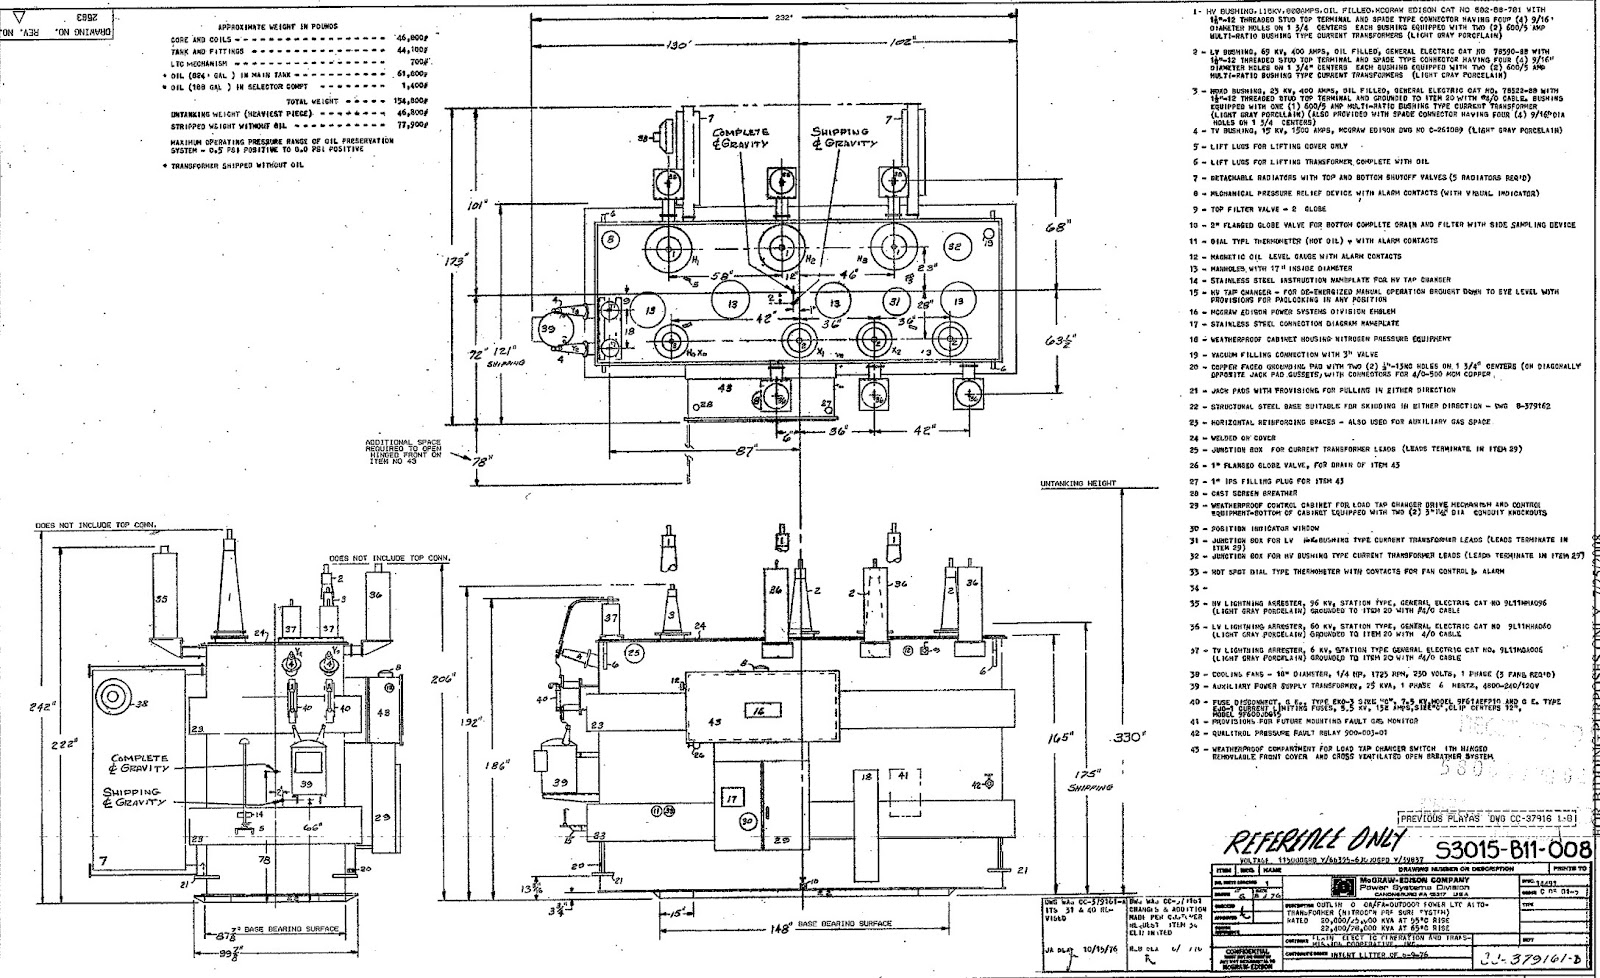 ge buck boost transformer wiring diagram Collection-In Acme Buck Boost Transformer Wiring Diagram Within Transformers Diagrams 7-g